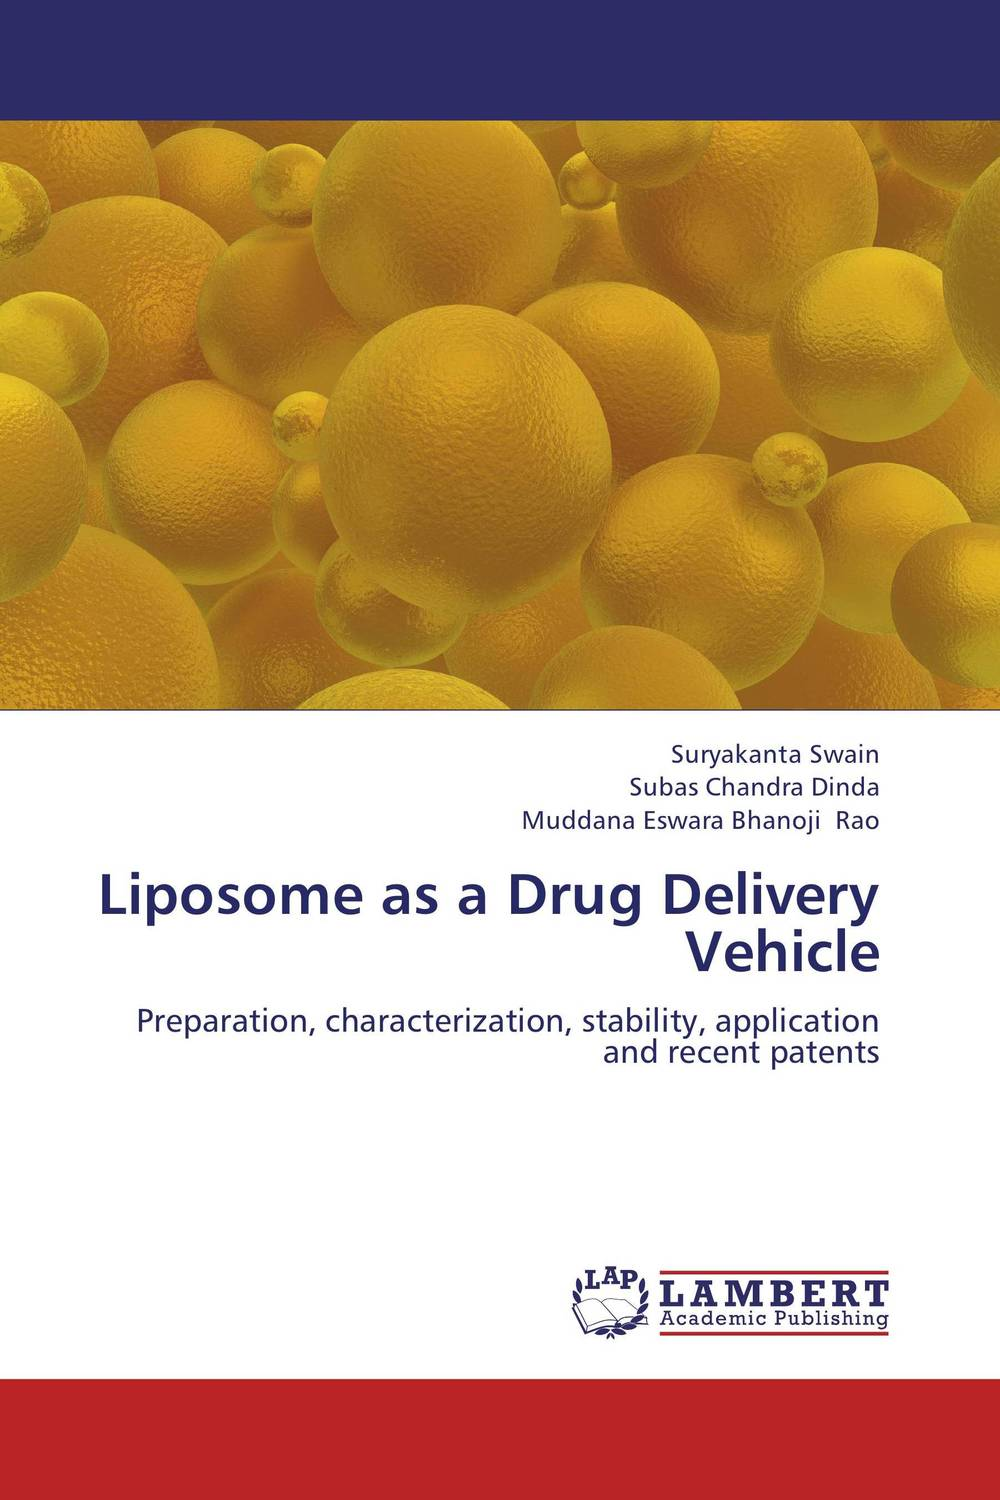 Liposome as a Drug Delivery Vehicle yuvraj singh negi biopolymers for targeted drug delivery systems